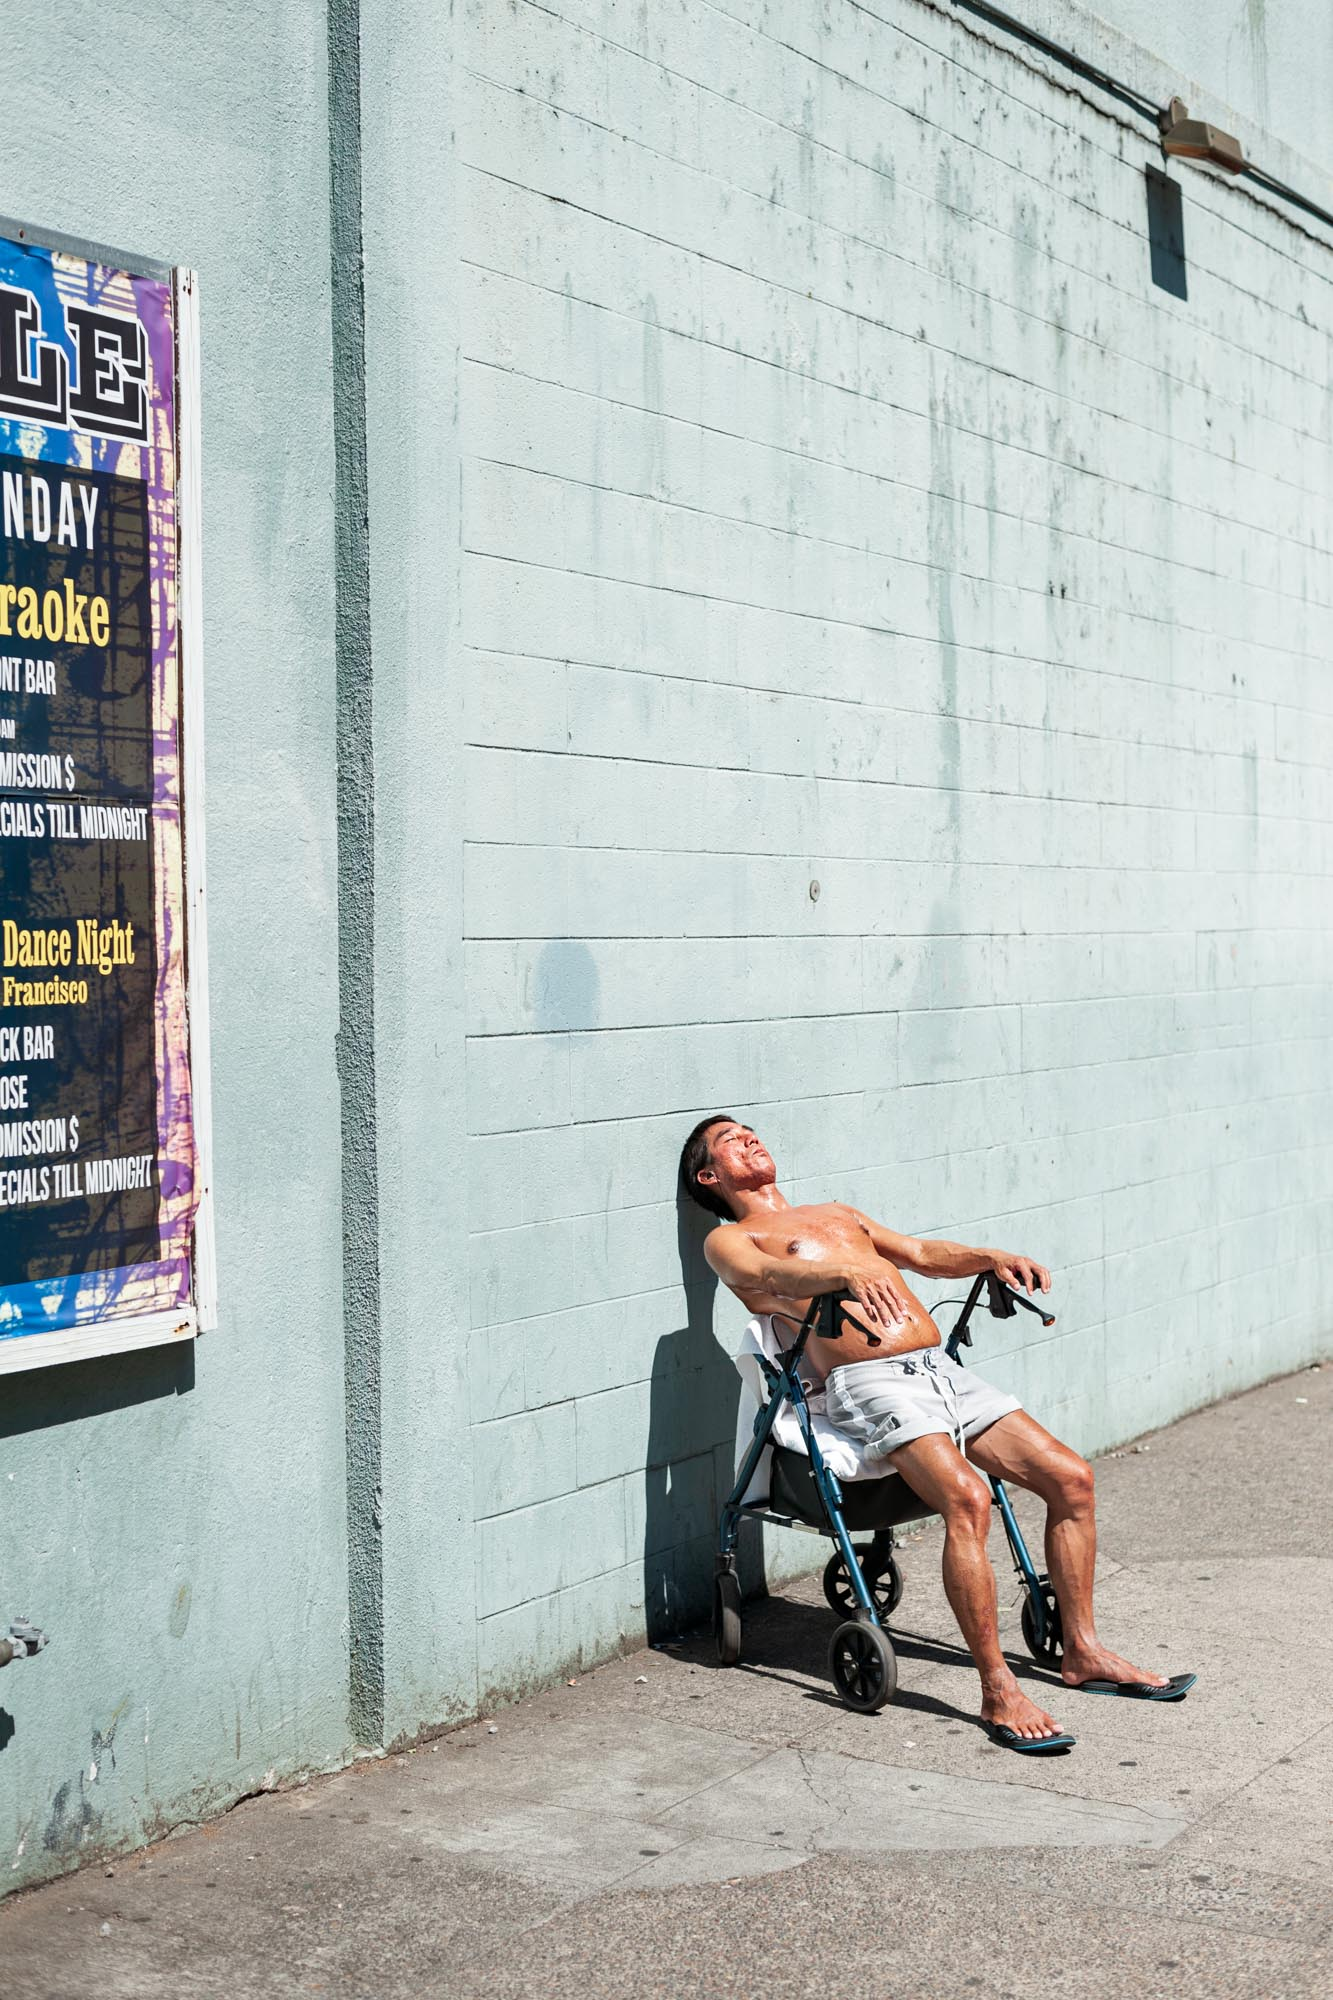 a man tanning in the city